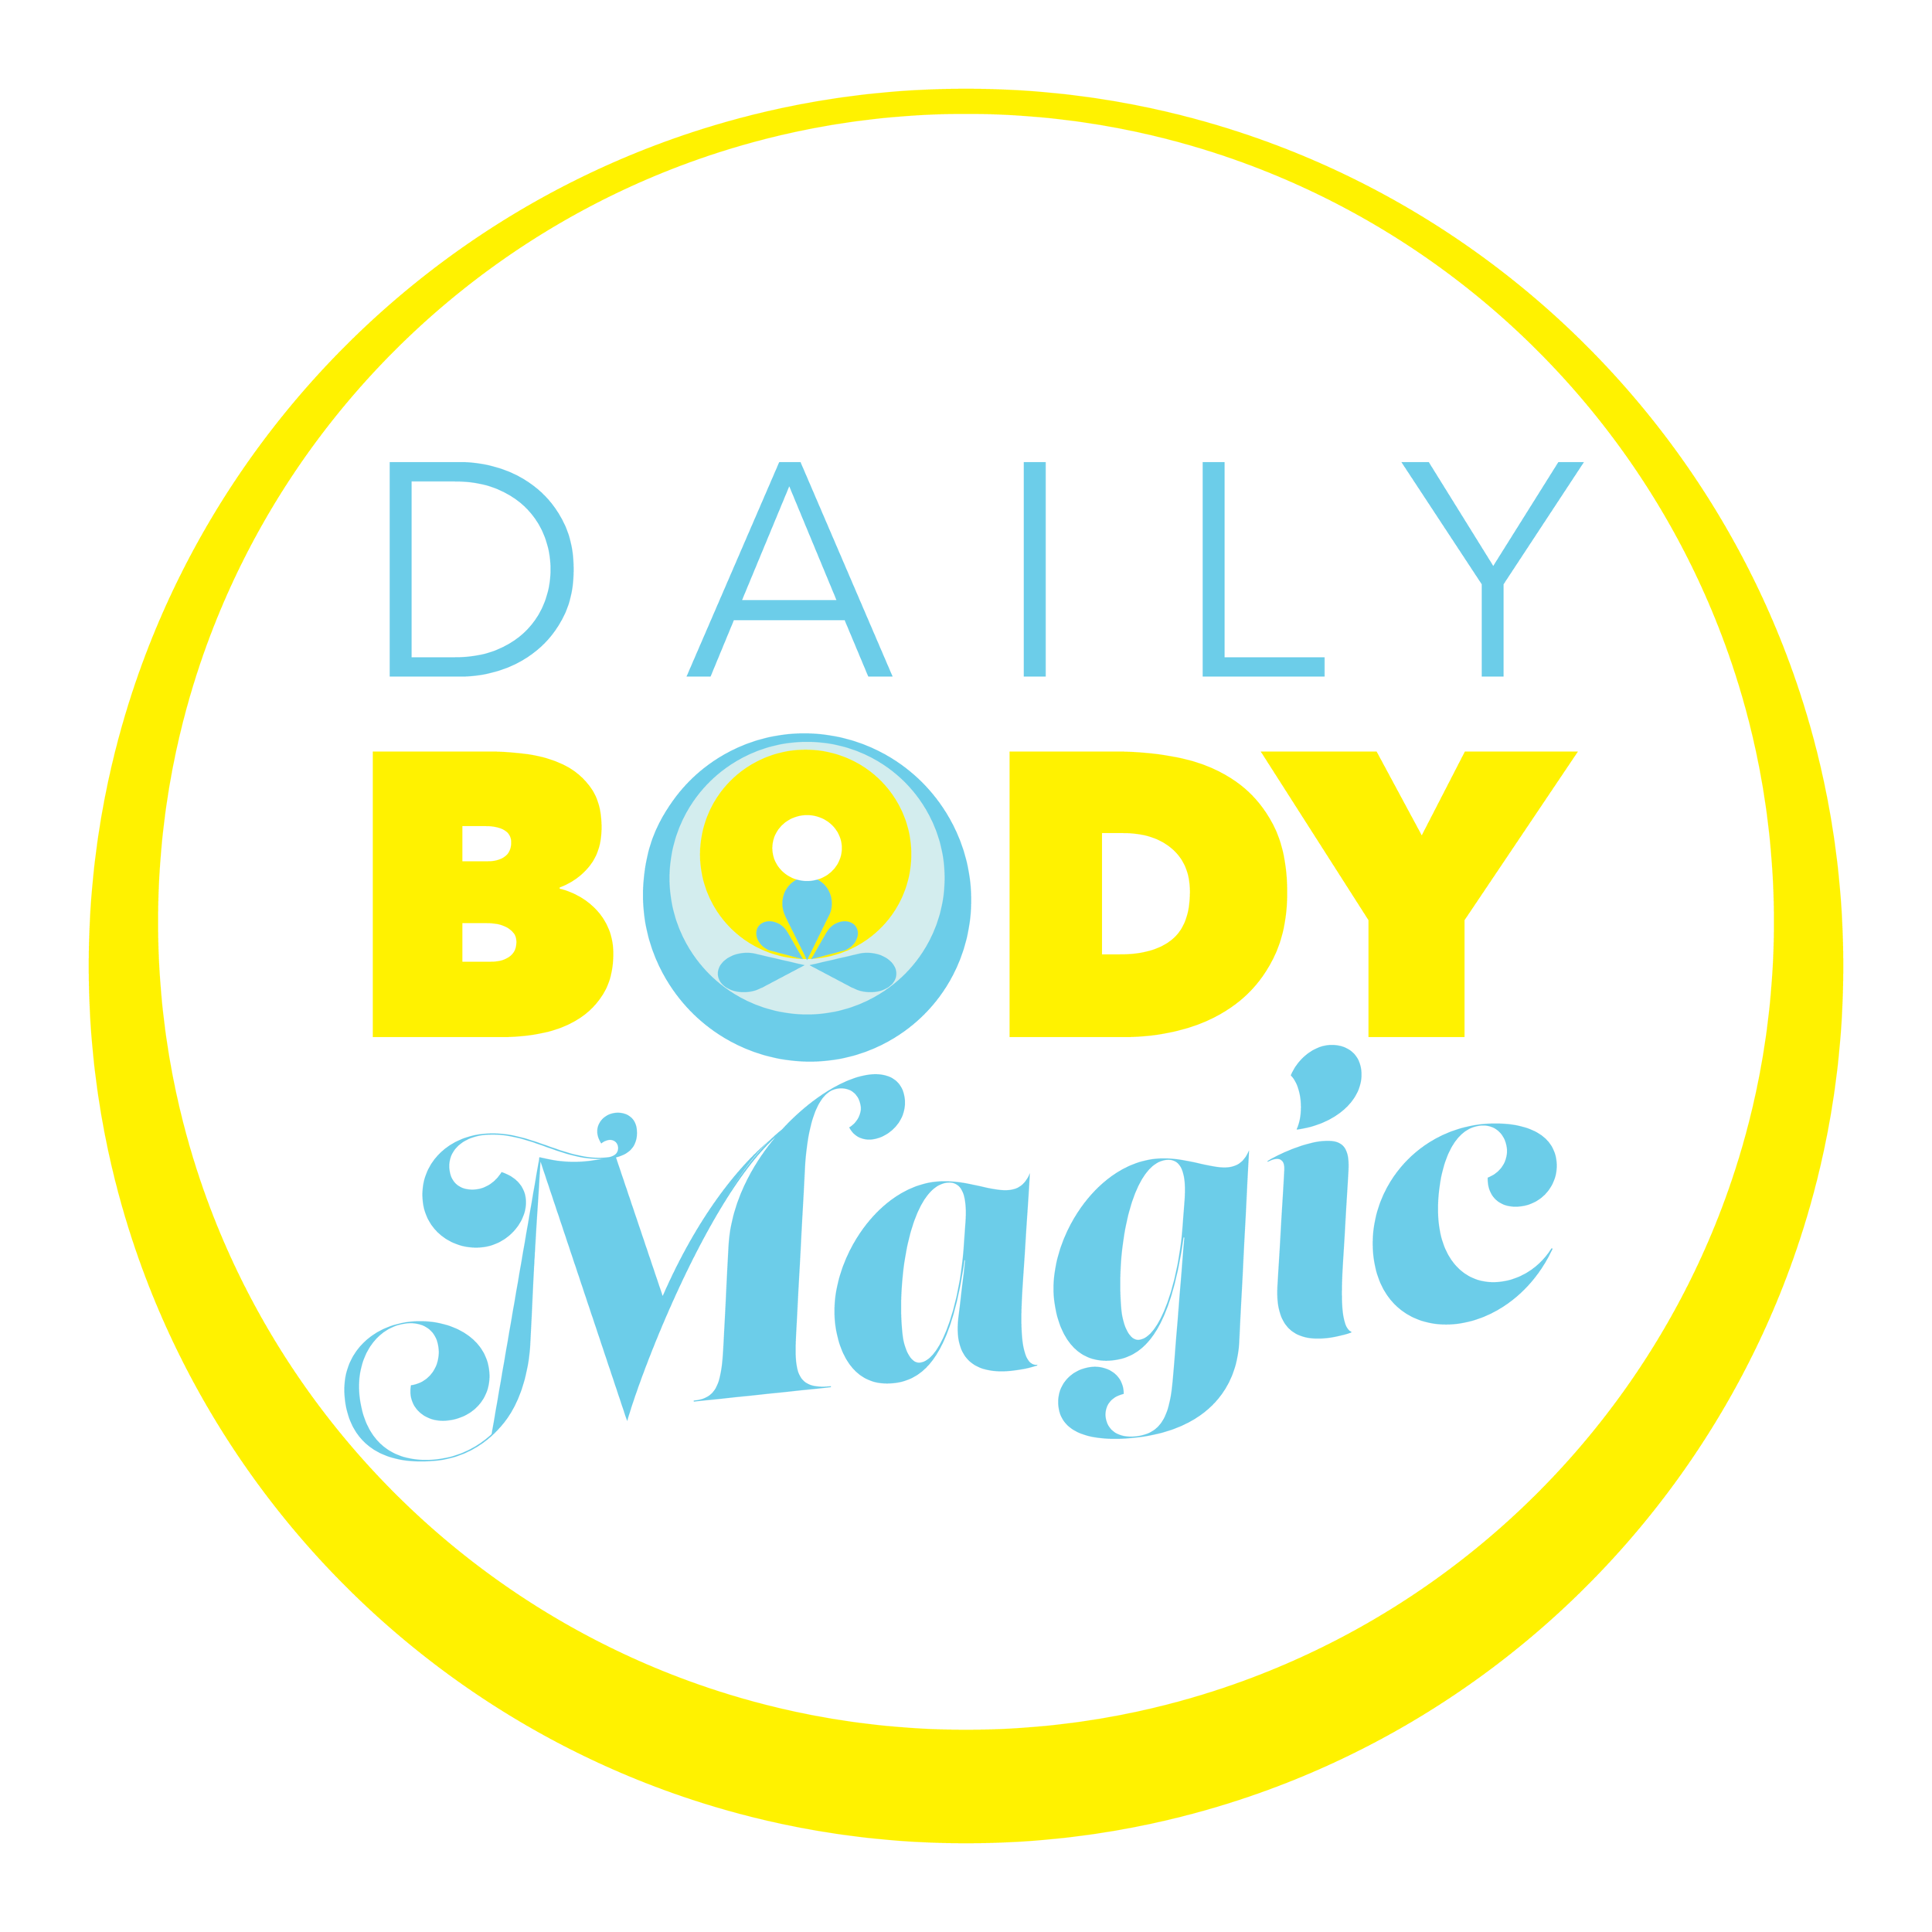 Daily Body Magic: 90 Days of Mindfulness - Transform Your Awareness of Your Breath with 90 Days of Simple Reminders in Your Inbox.